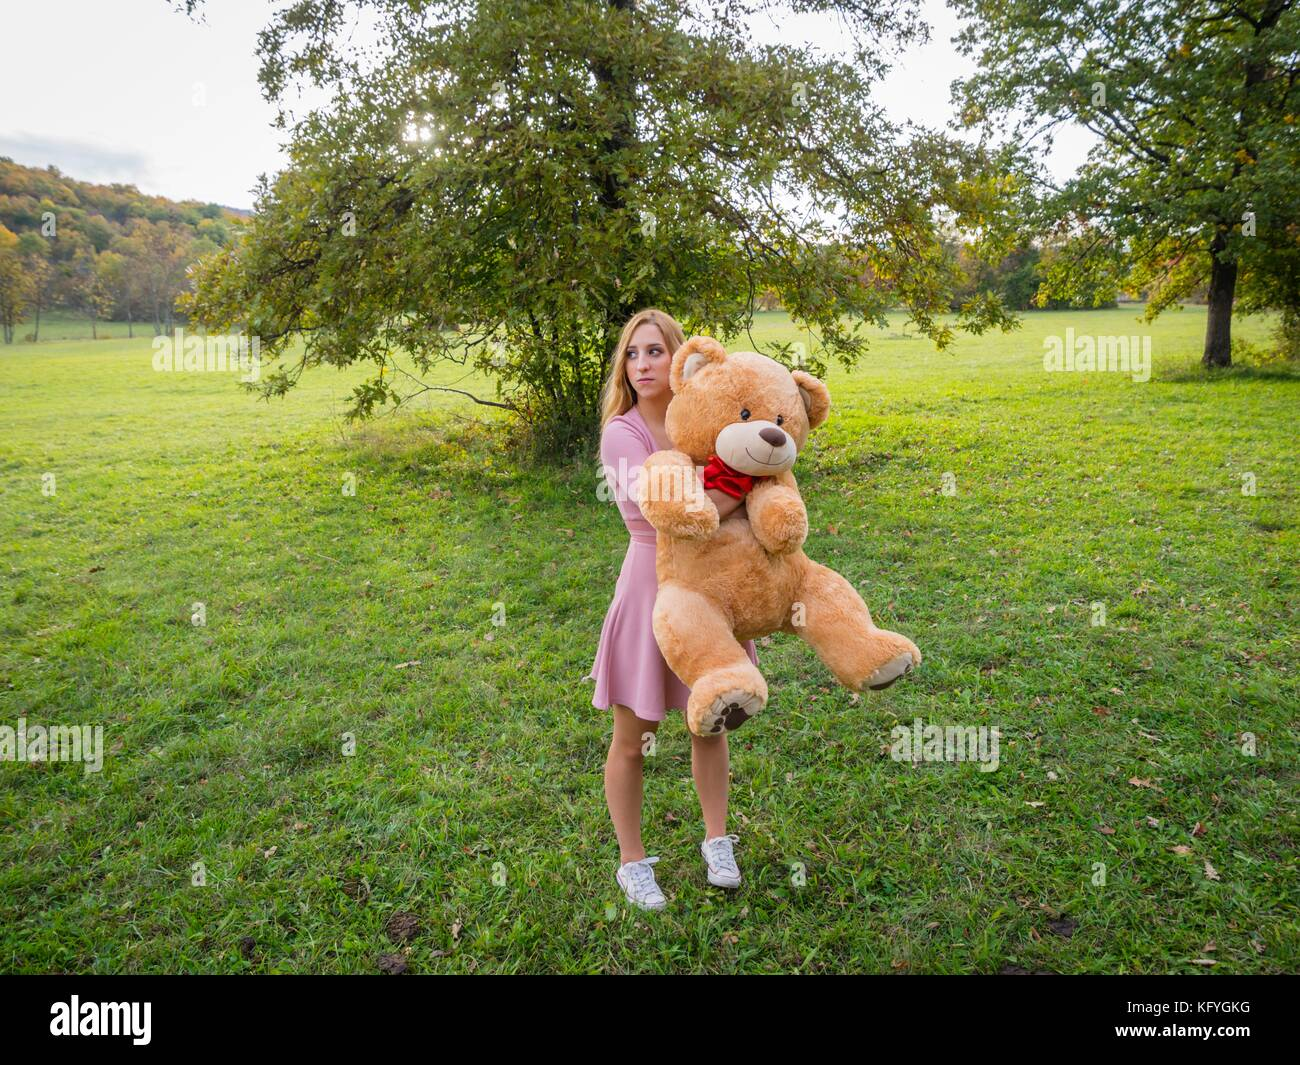 Cute teen girl and big teddy-bear toy lost in nature solitude - Stock Image